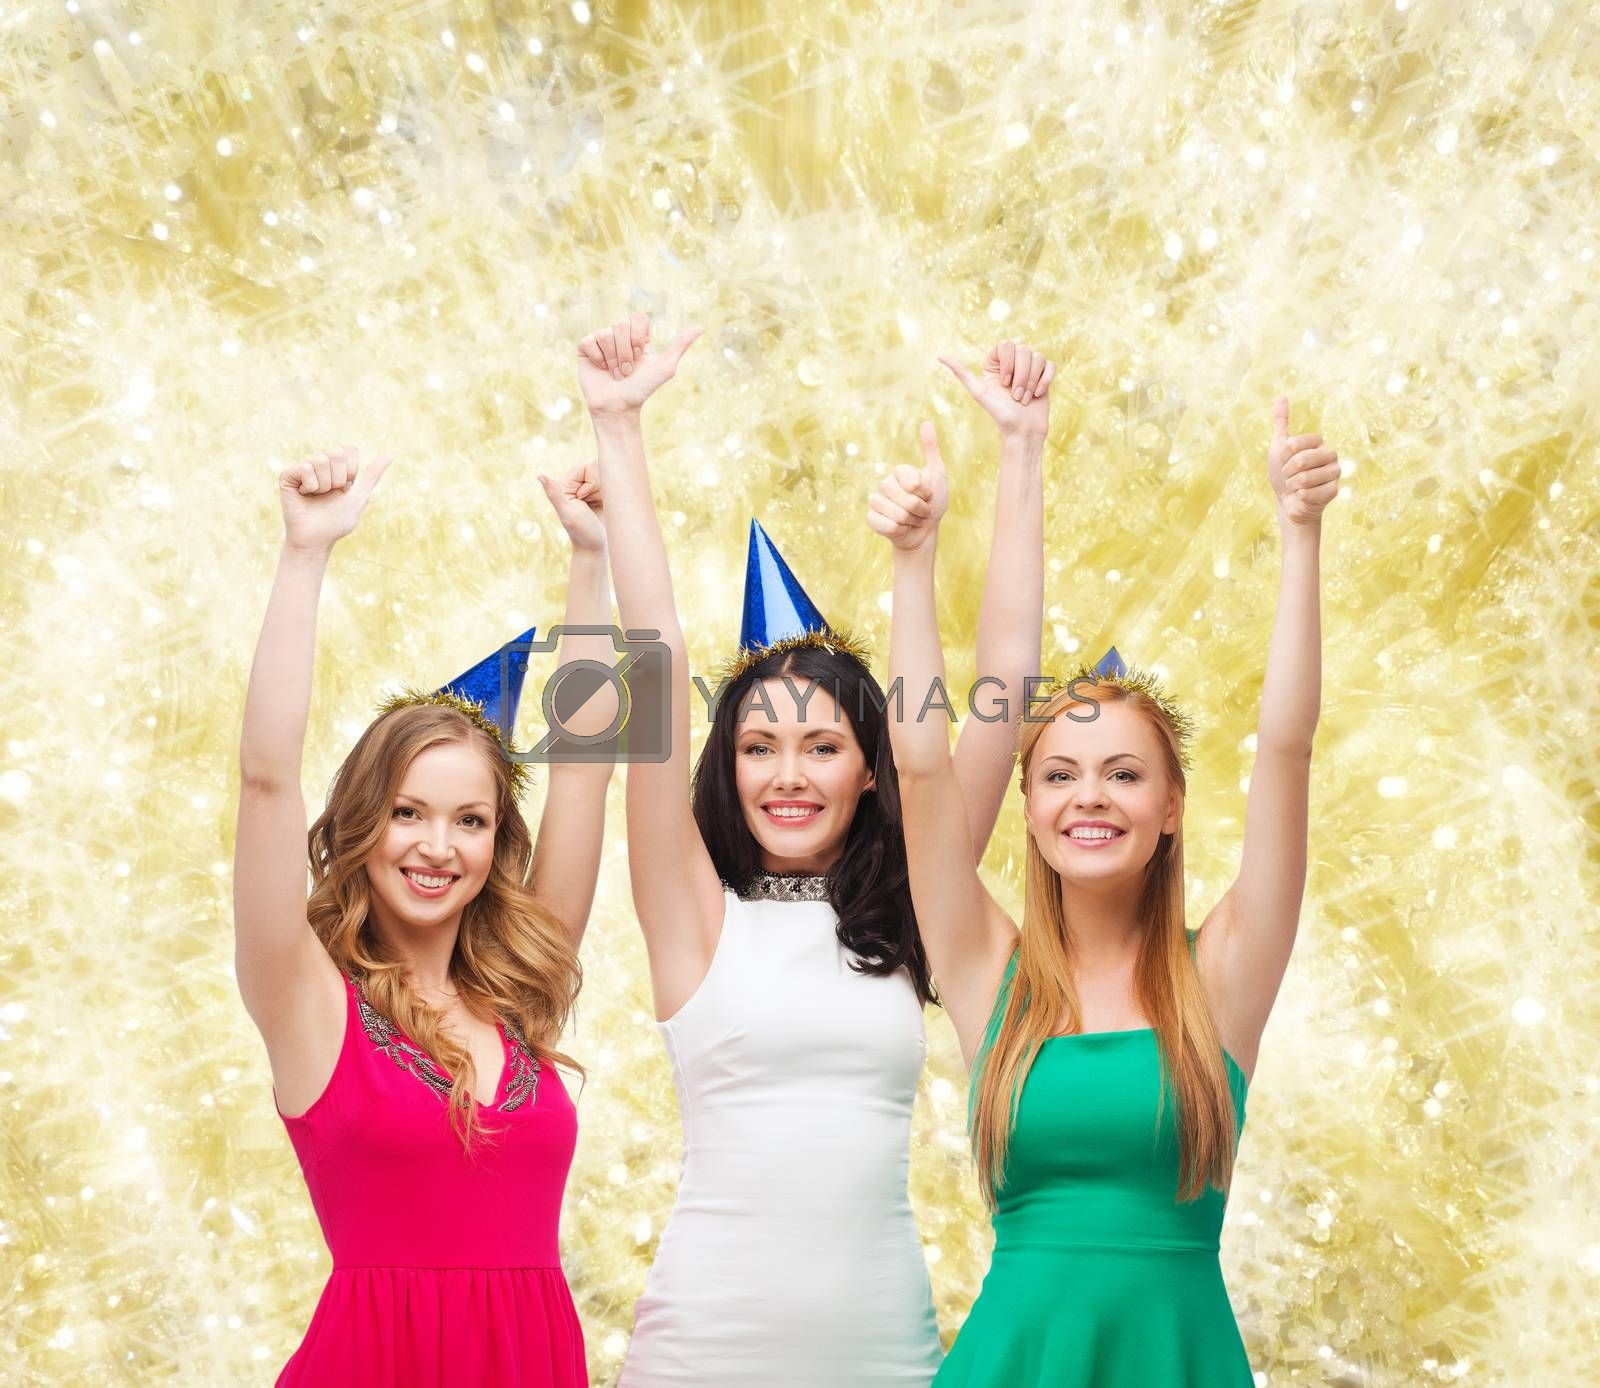 holidays, people, gesture and celebration concept - smiling women in party caps showing thumbs up over yellow lights background